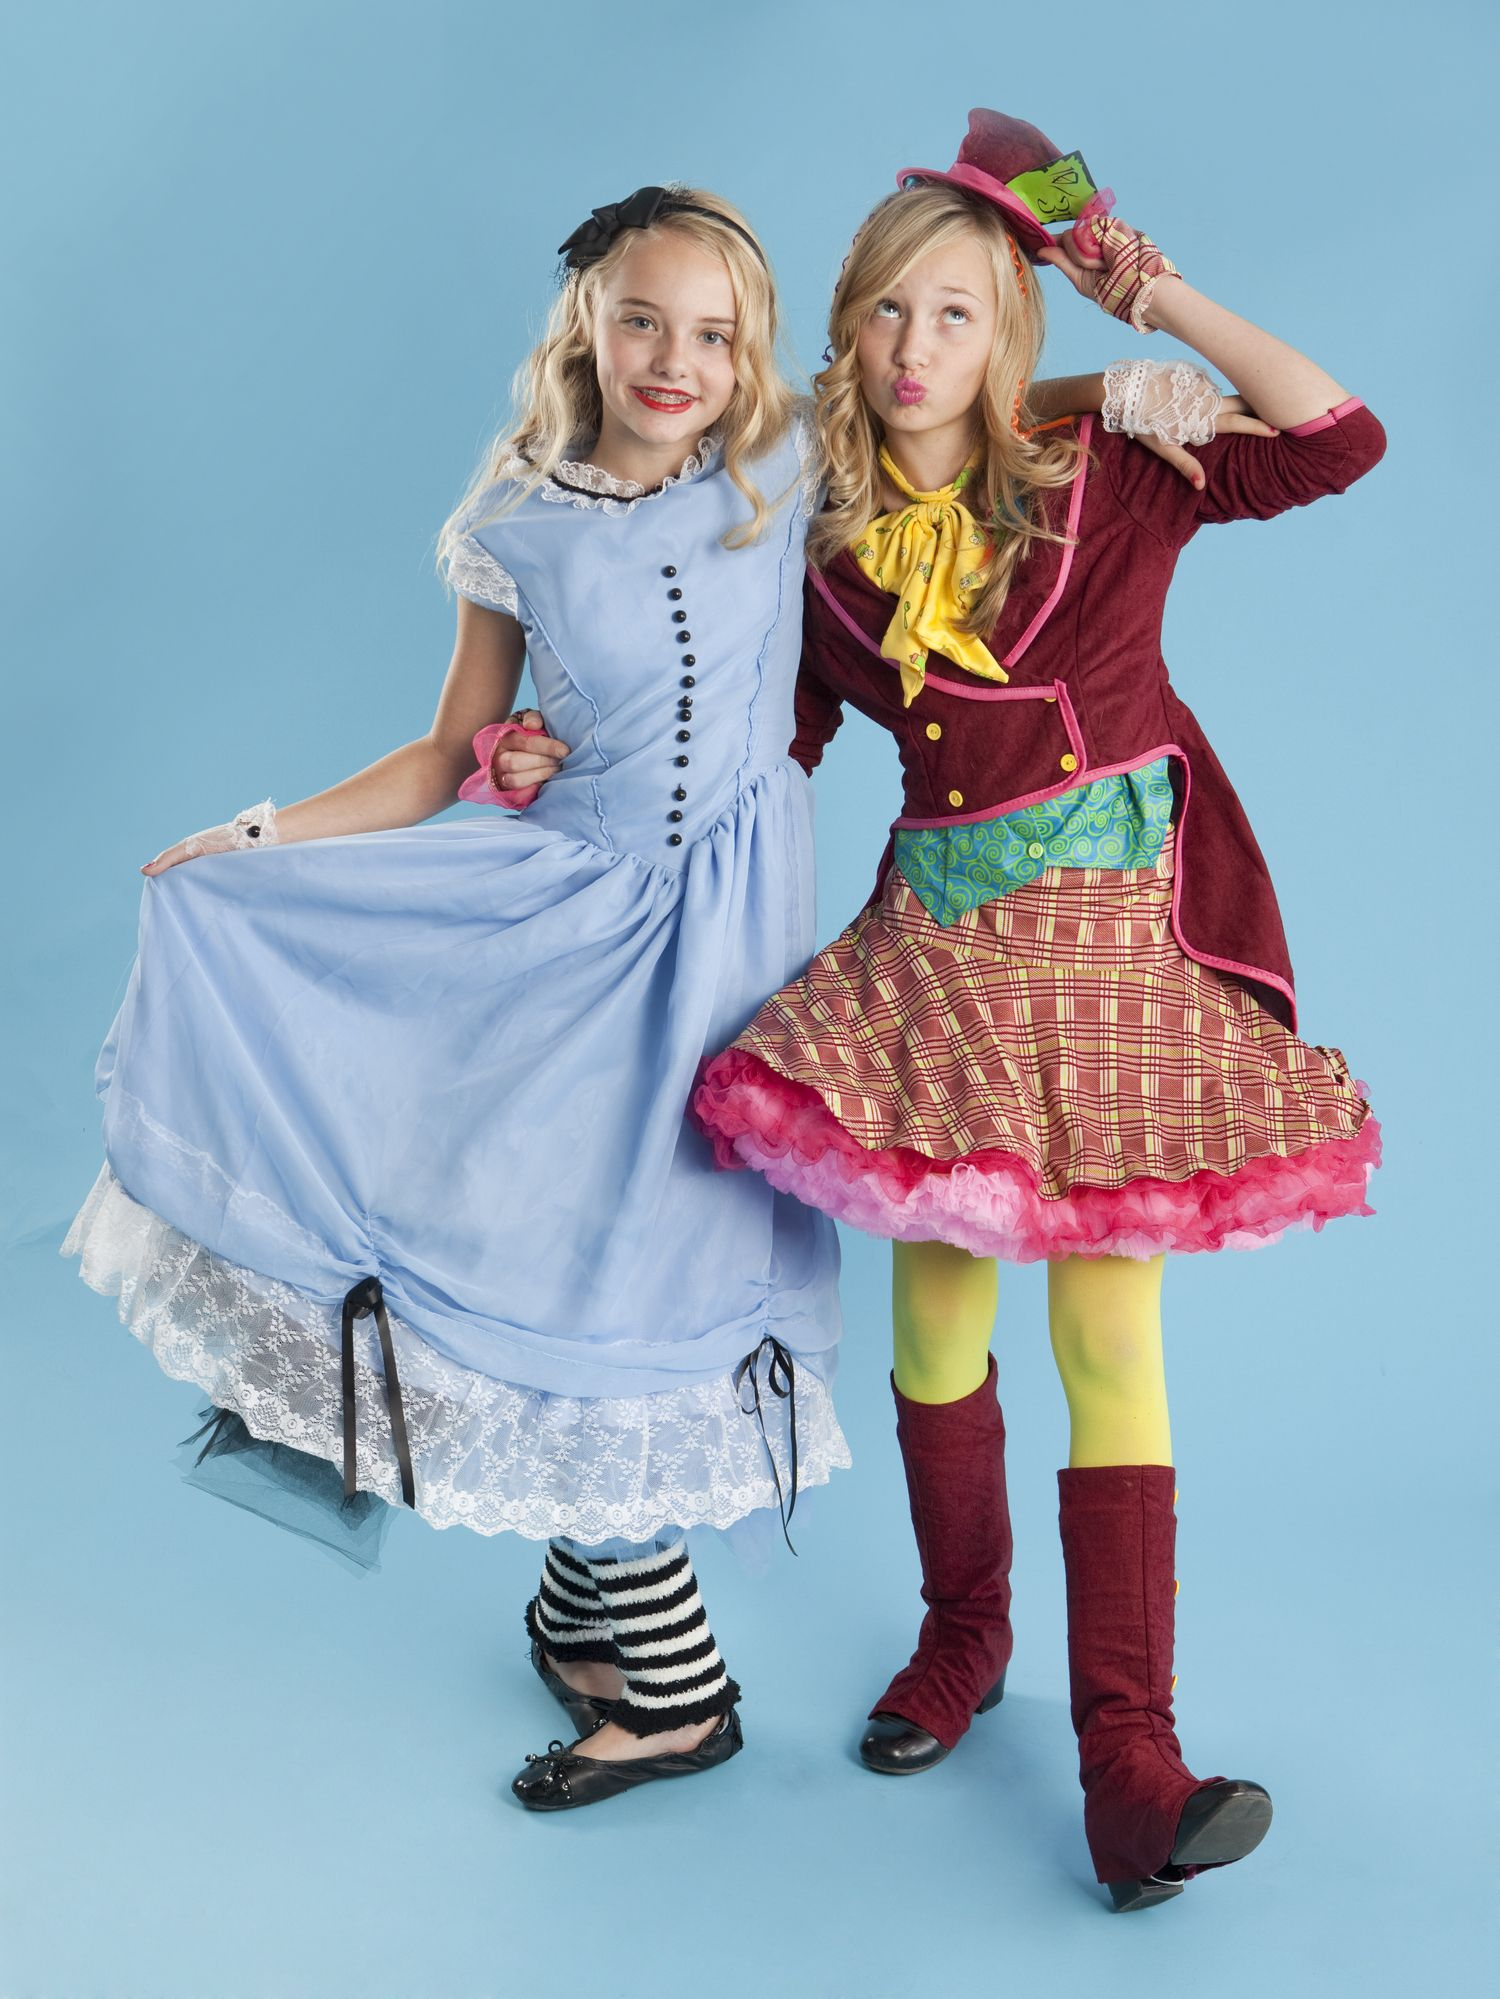 20 Diy Alice In Wonderland Costume Ideas Best Alice In Wonderland Halloween Costumes